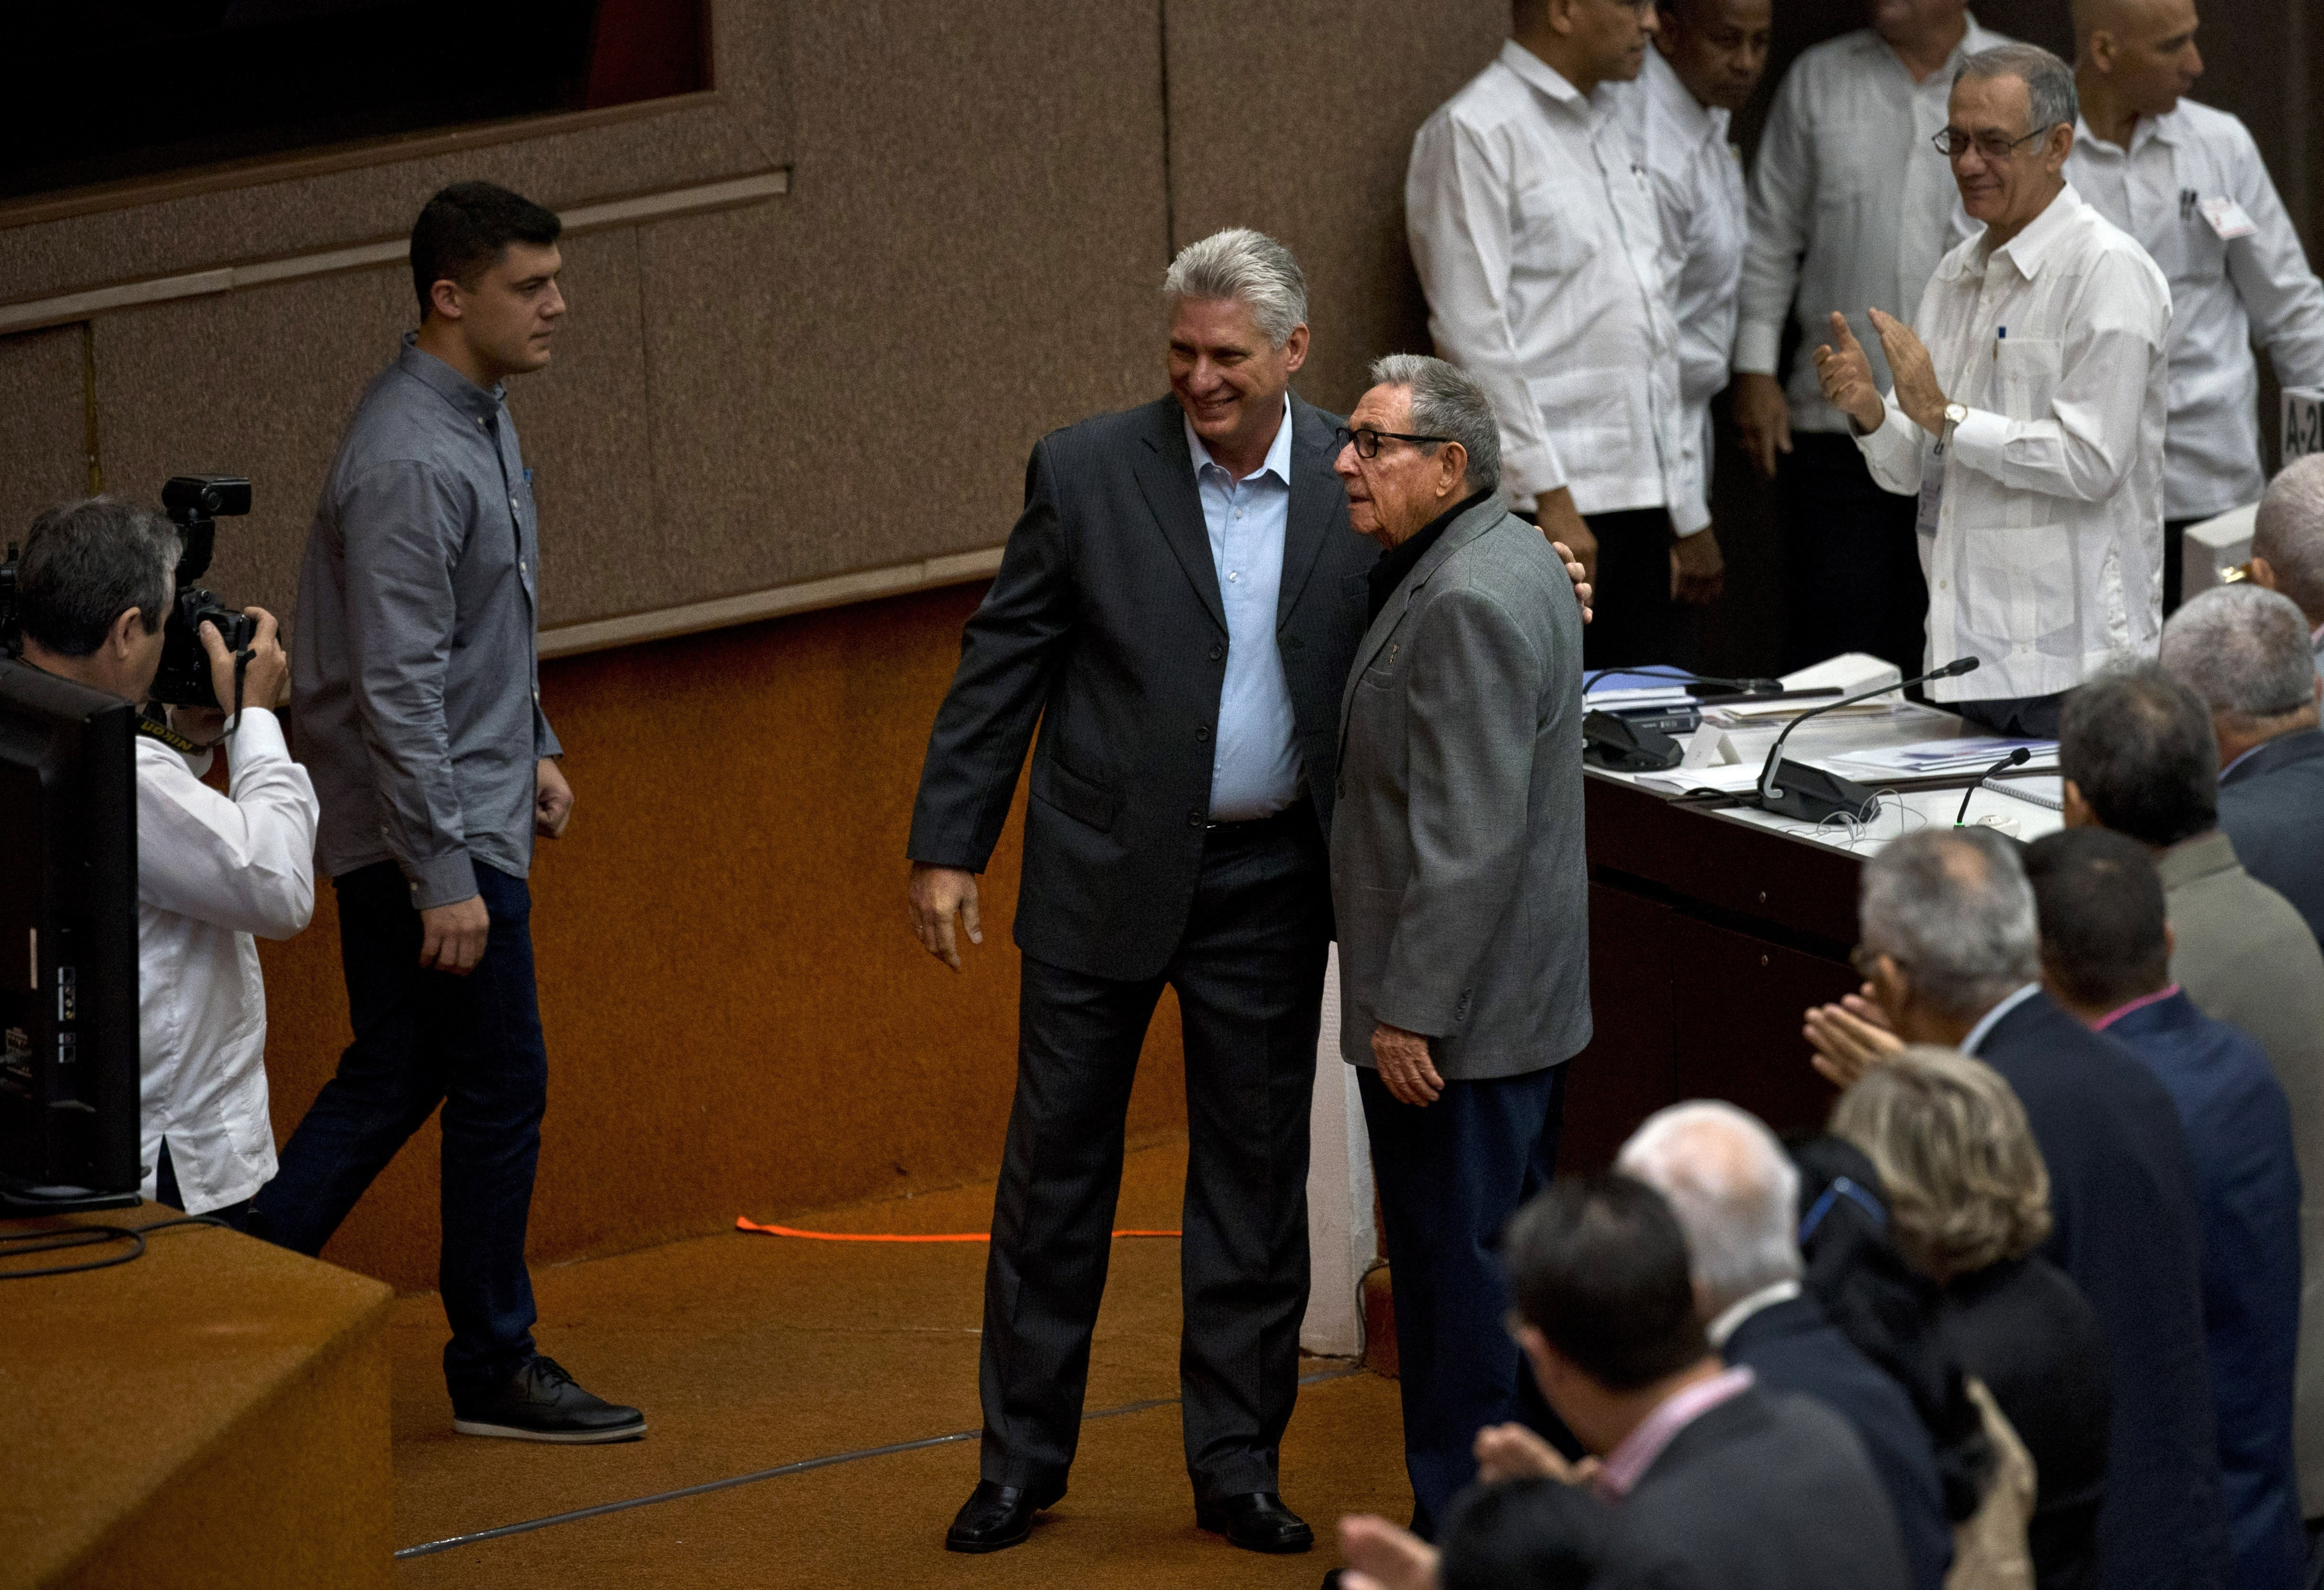 Cuba's President Miguel Diaz-Canel and former president Raul Castro, pose for a photo before the start of a session to debate the draft of a new Constitution, at the Convention Palace in Havana, Dec. 21, 2018.